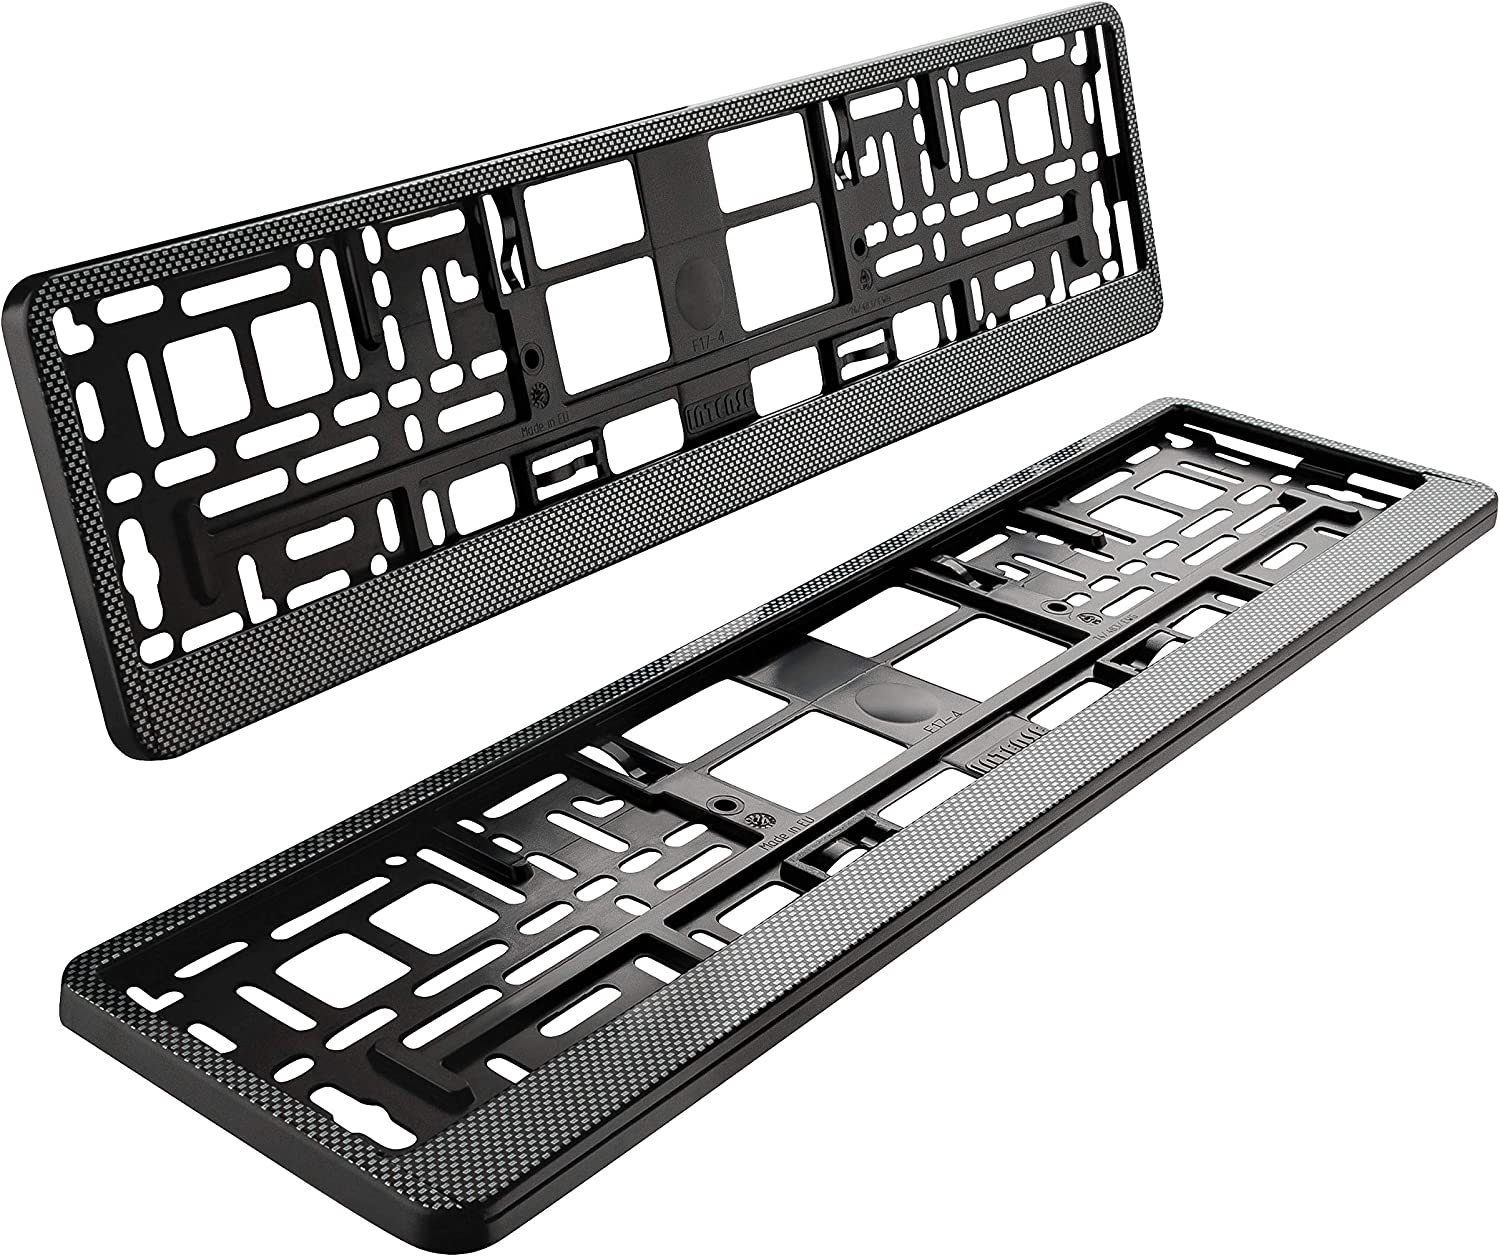 AUTOLIGHT 24 I 2 x License Plate Holder Carbon Look Black Silver I License Plate Holder Car I 520 x 110 mm